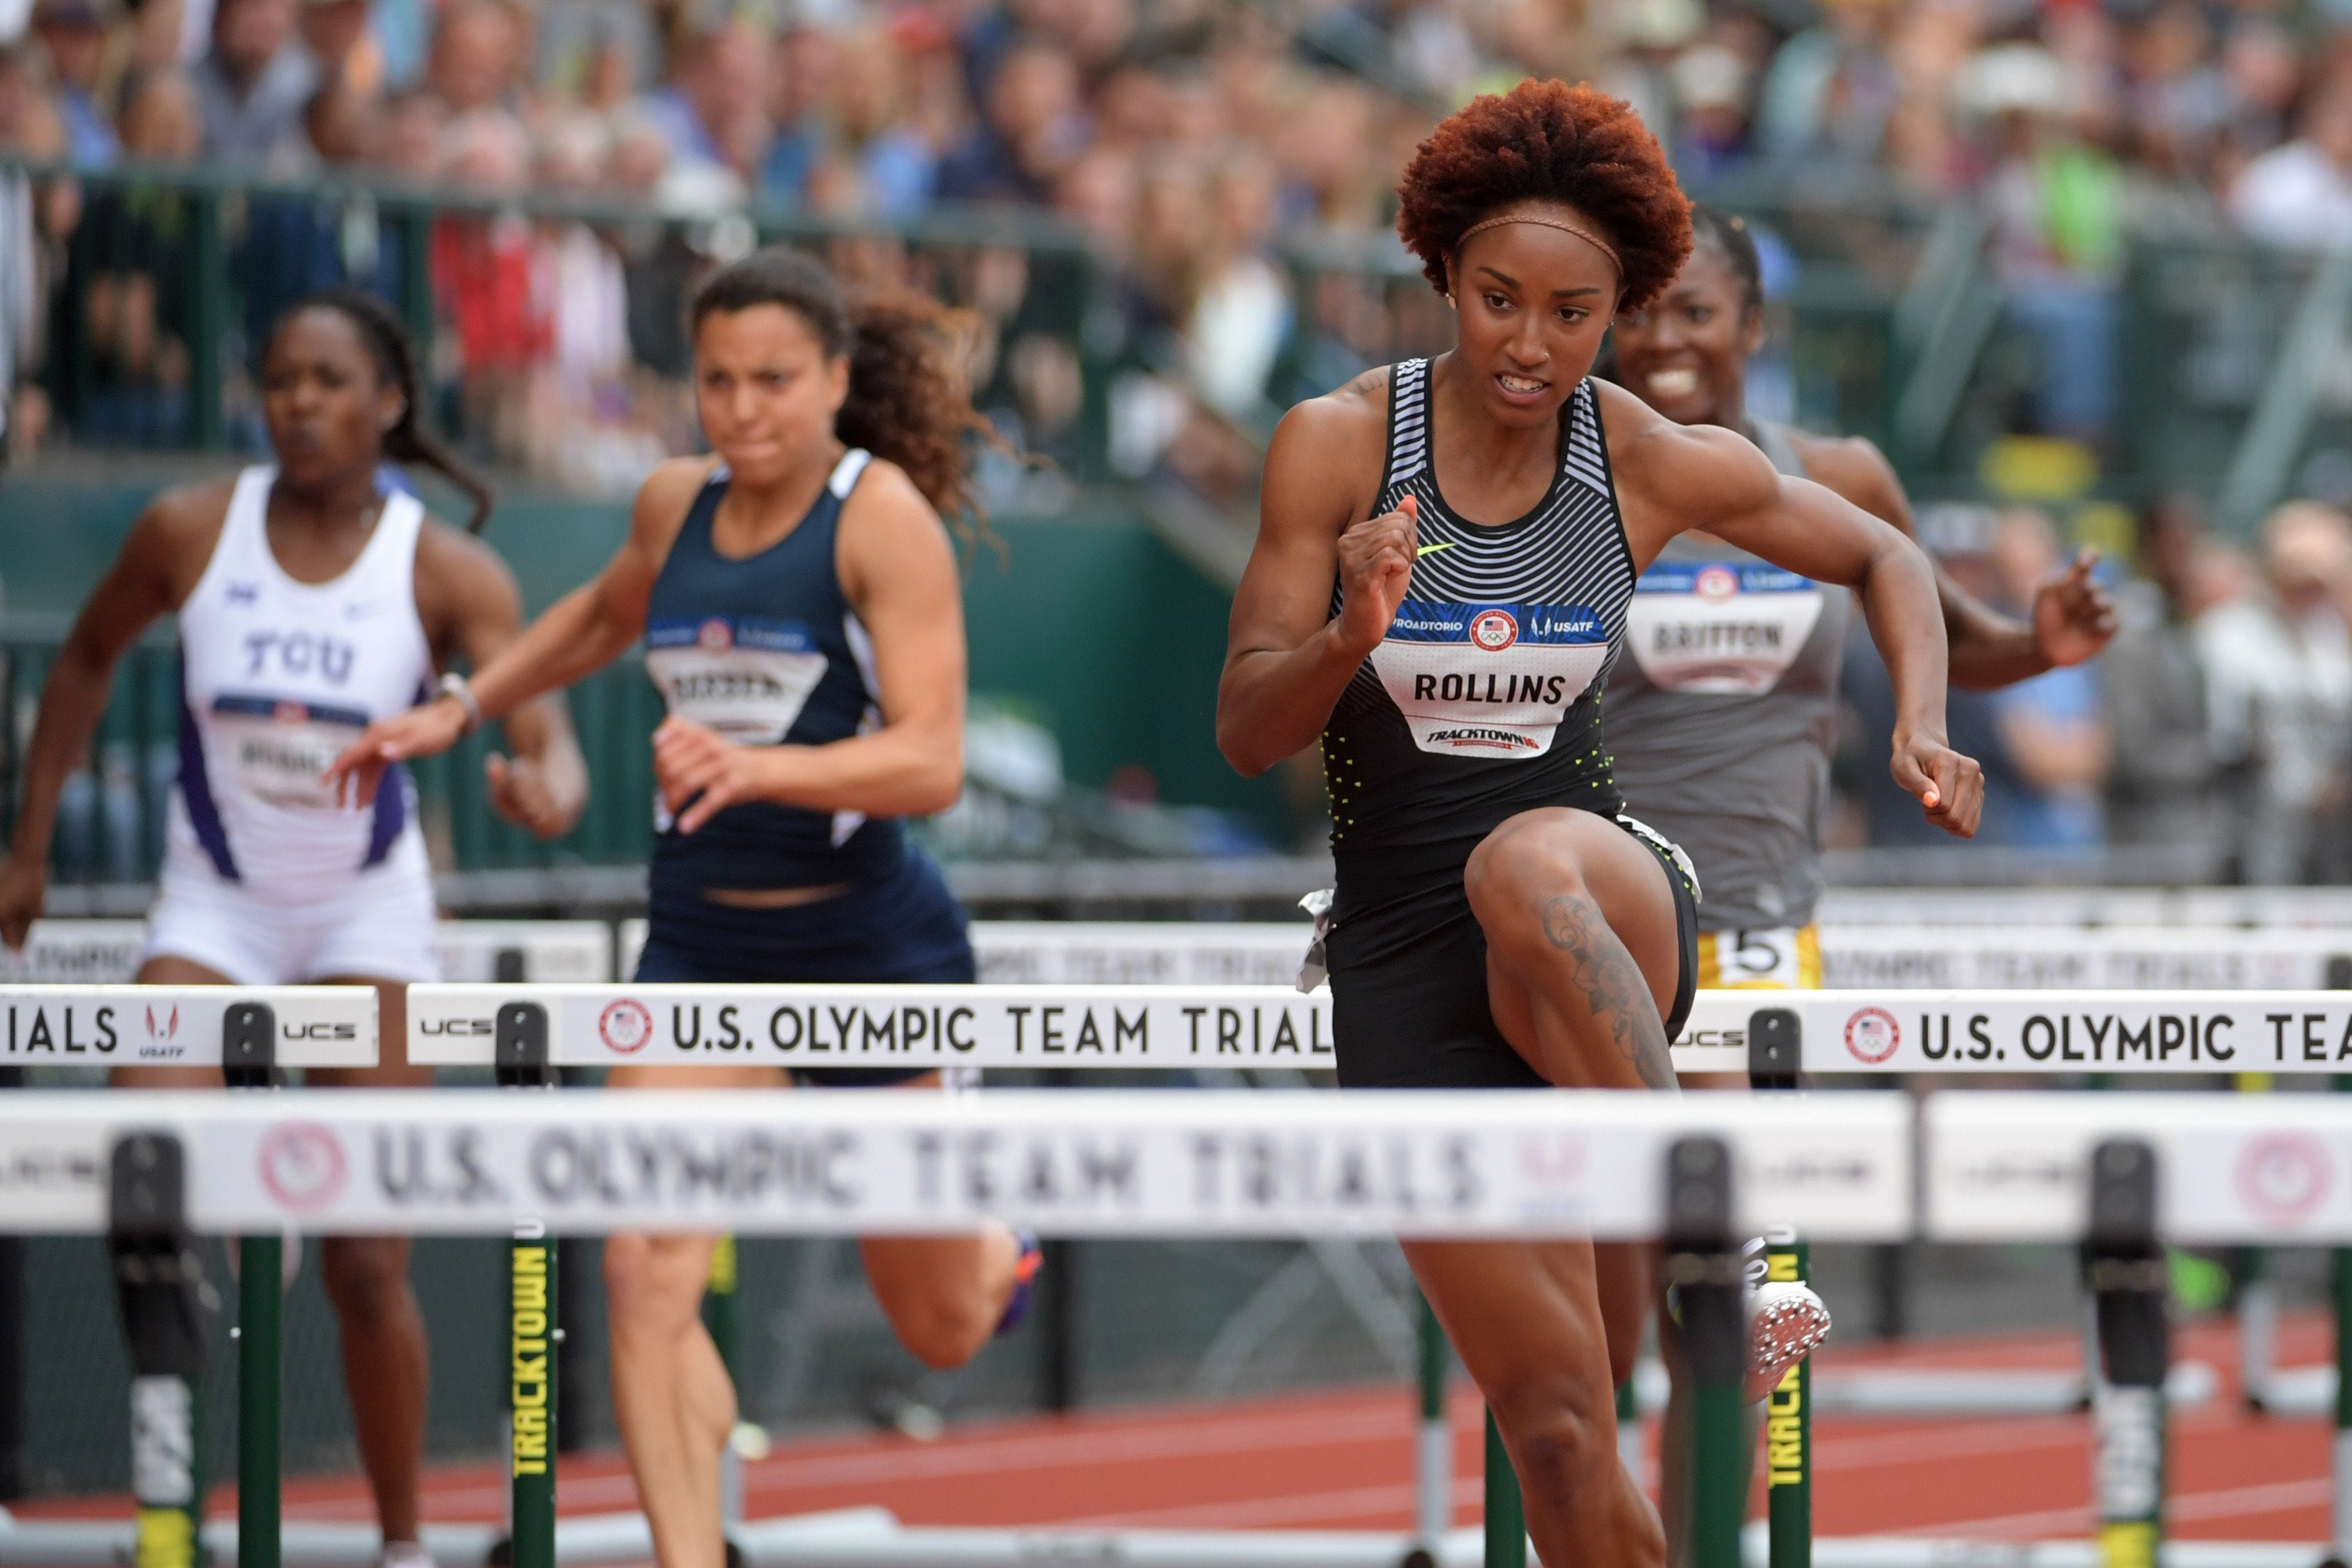 Reigning Olympic gold medalist, U.S. hurdler Brianna McNeal facing five year ban for anti-doping violation